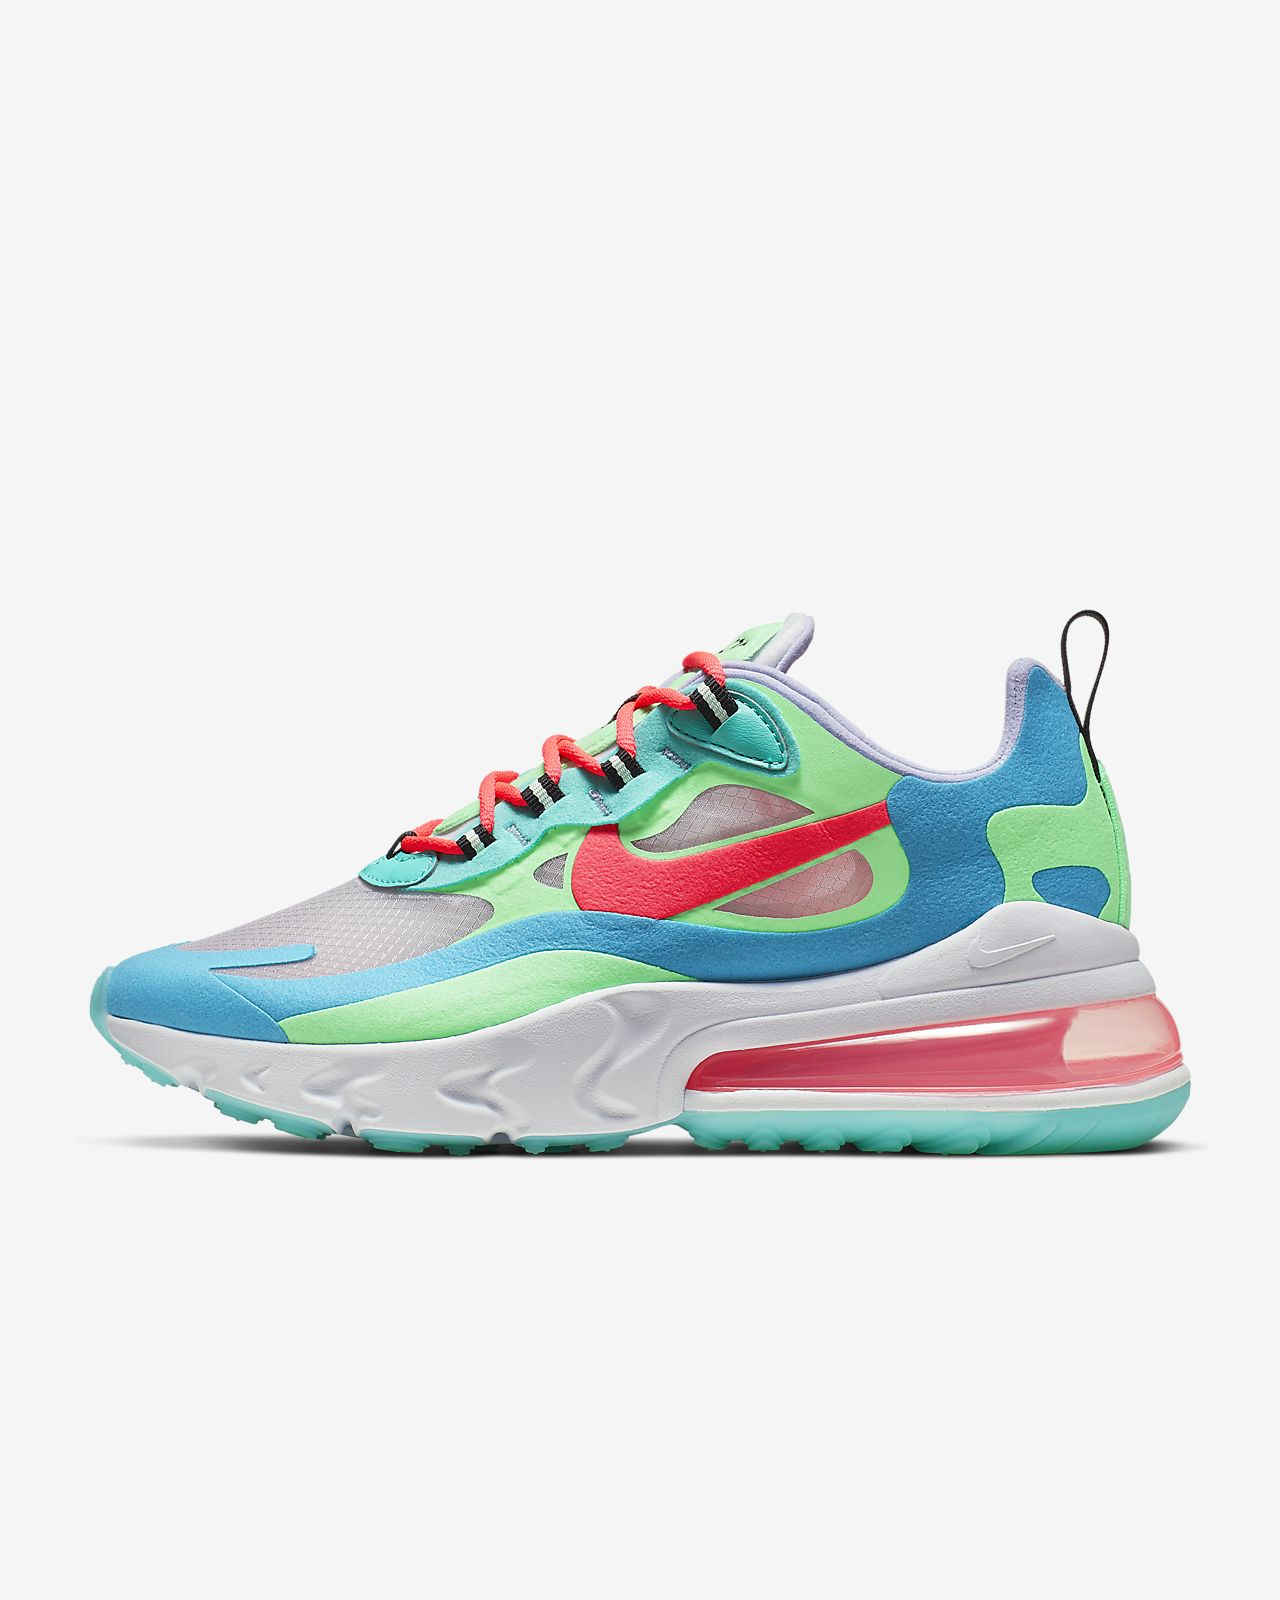 Women's Shoes on | Air max 270, Nike, Sneakers nike